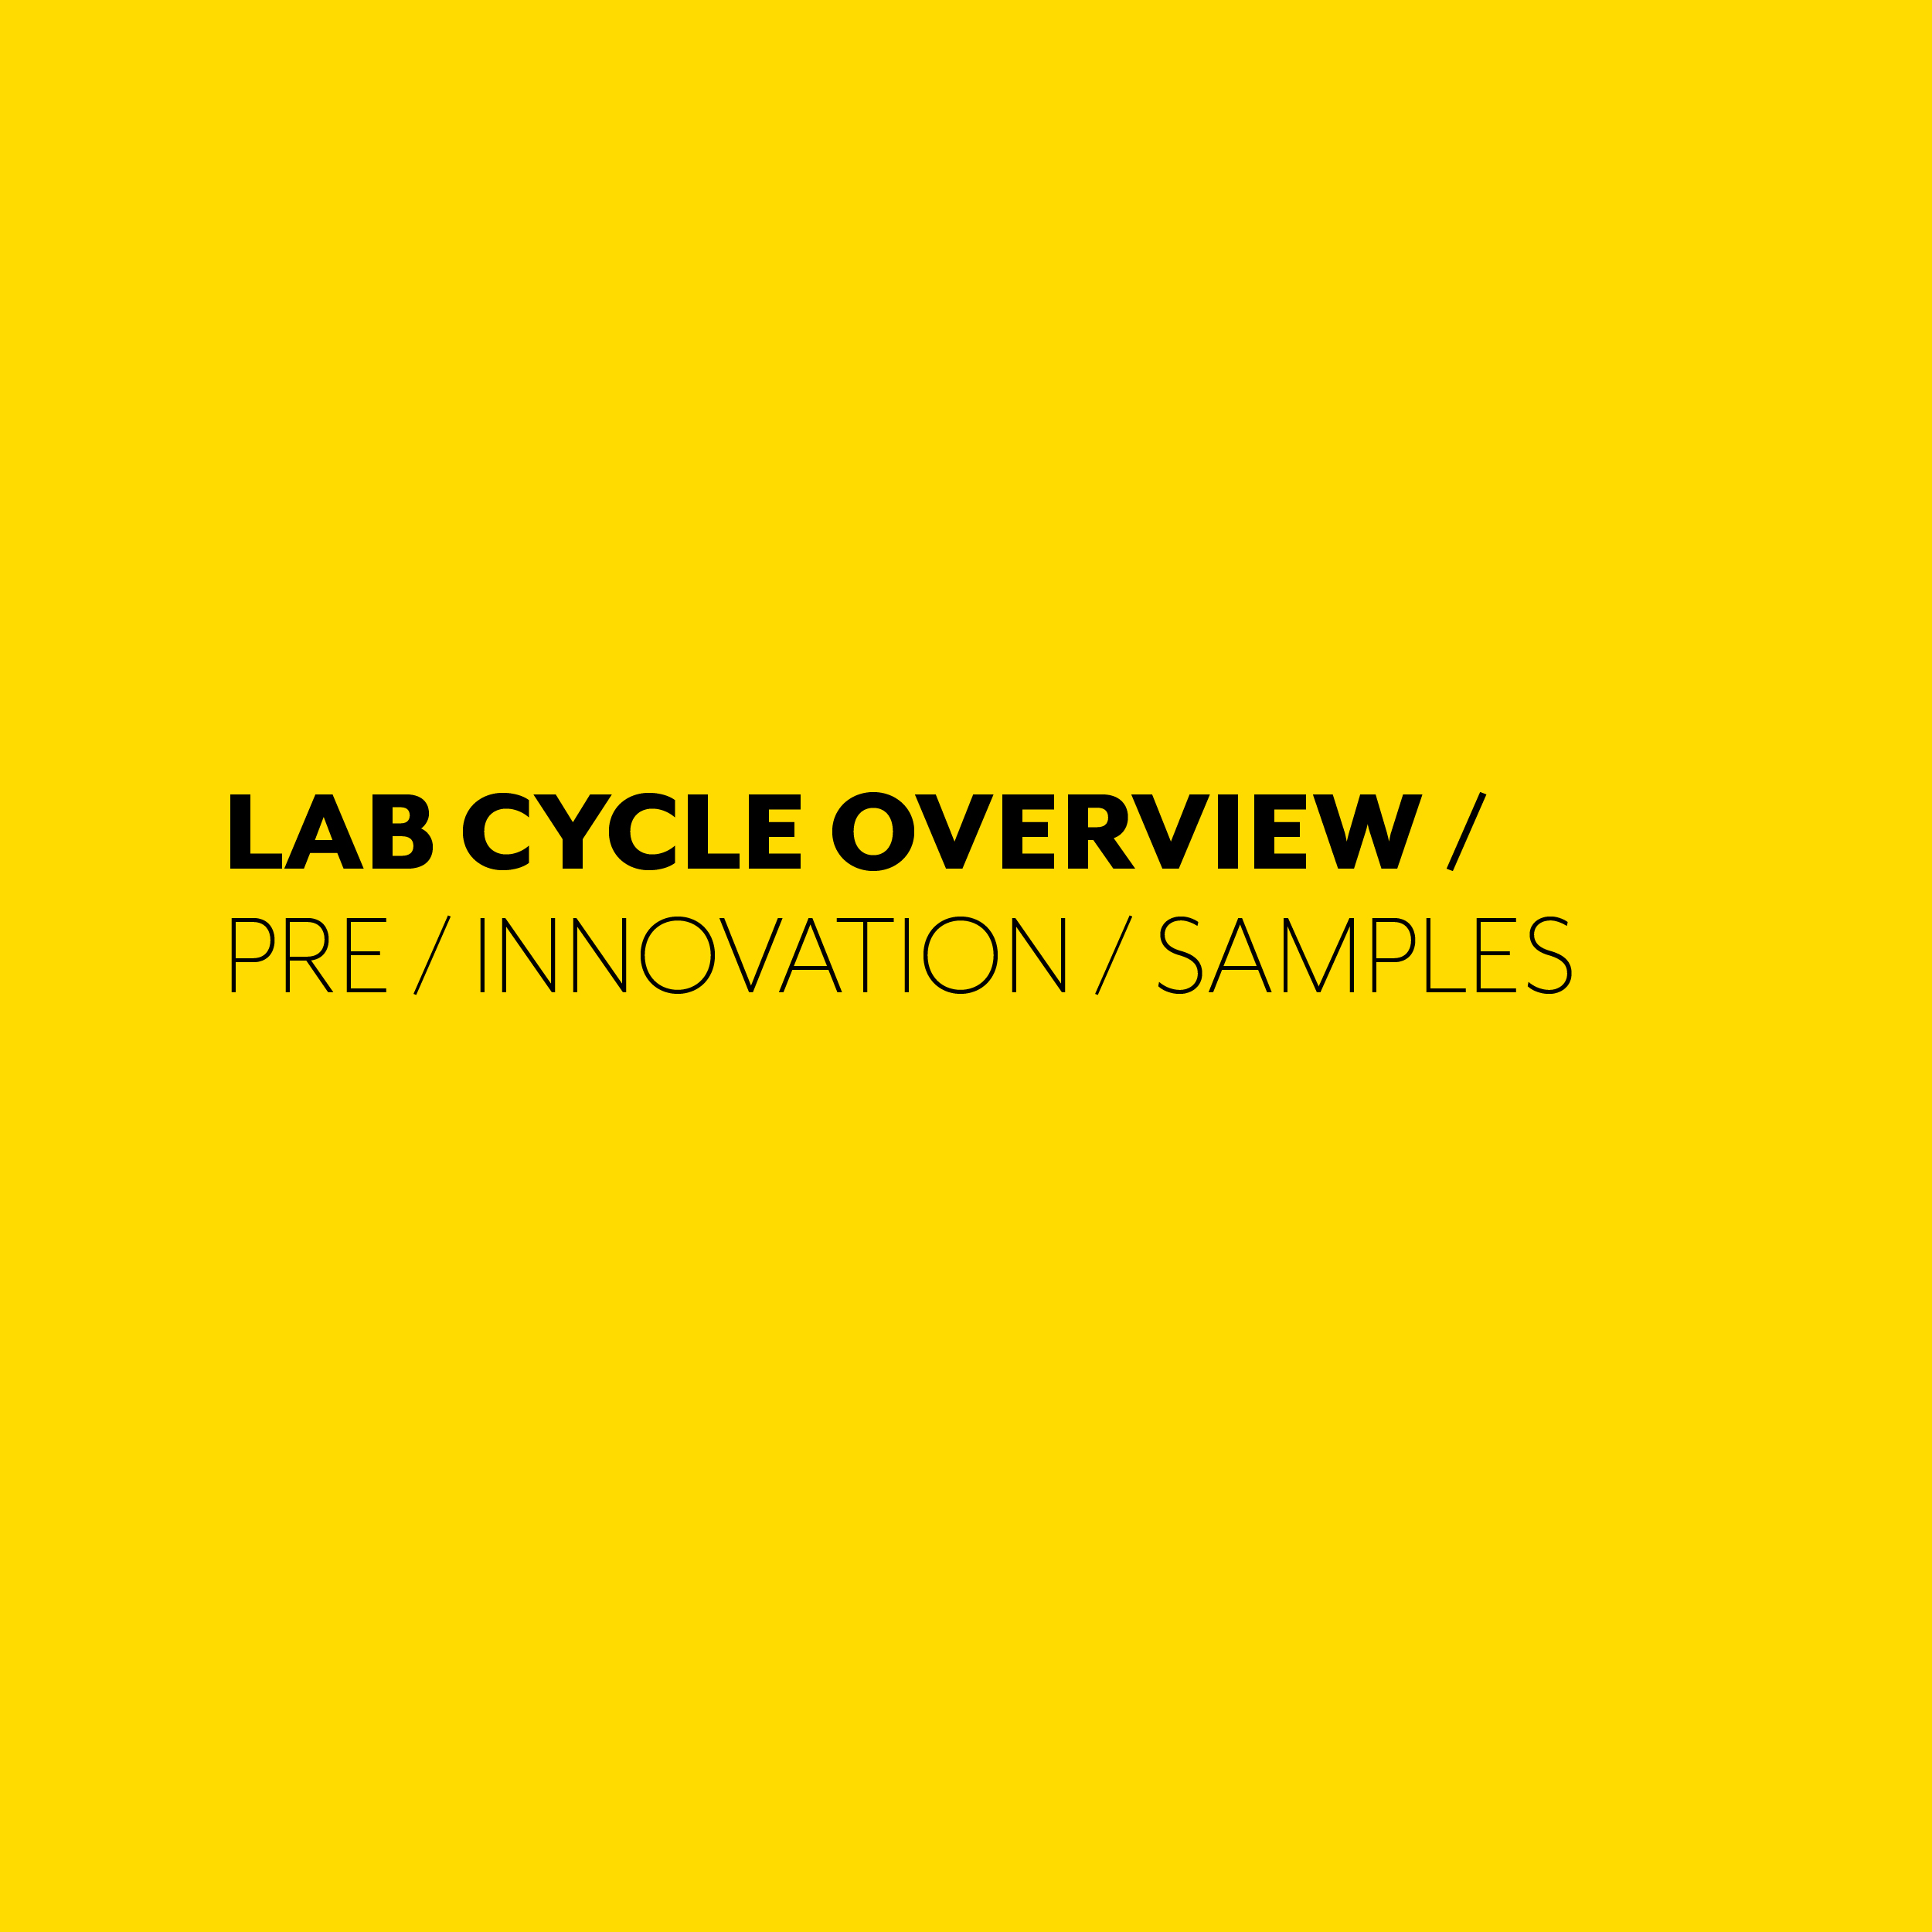 LAB CYCLE OVERVIEW.jpg